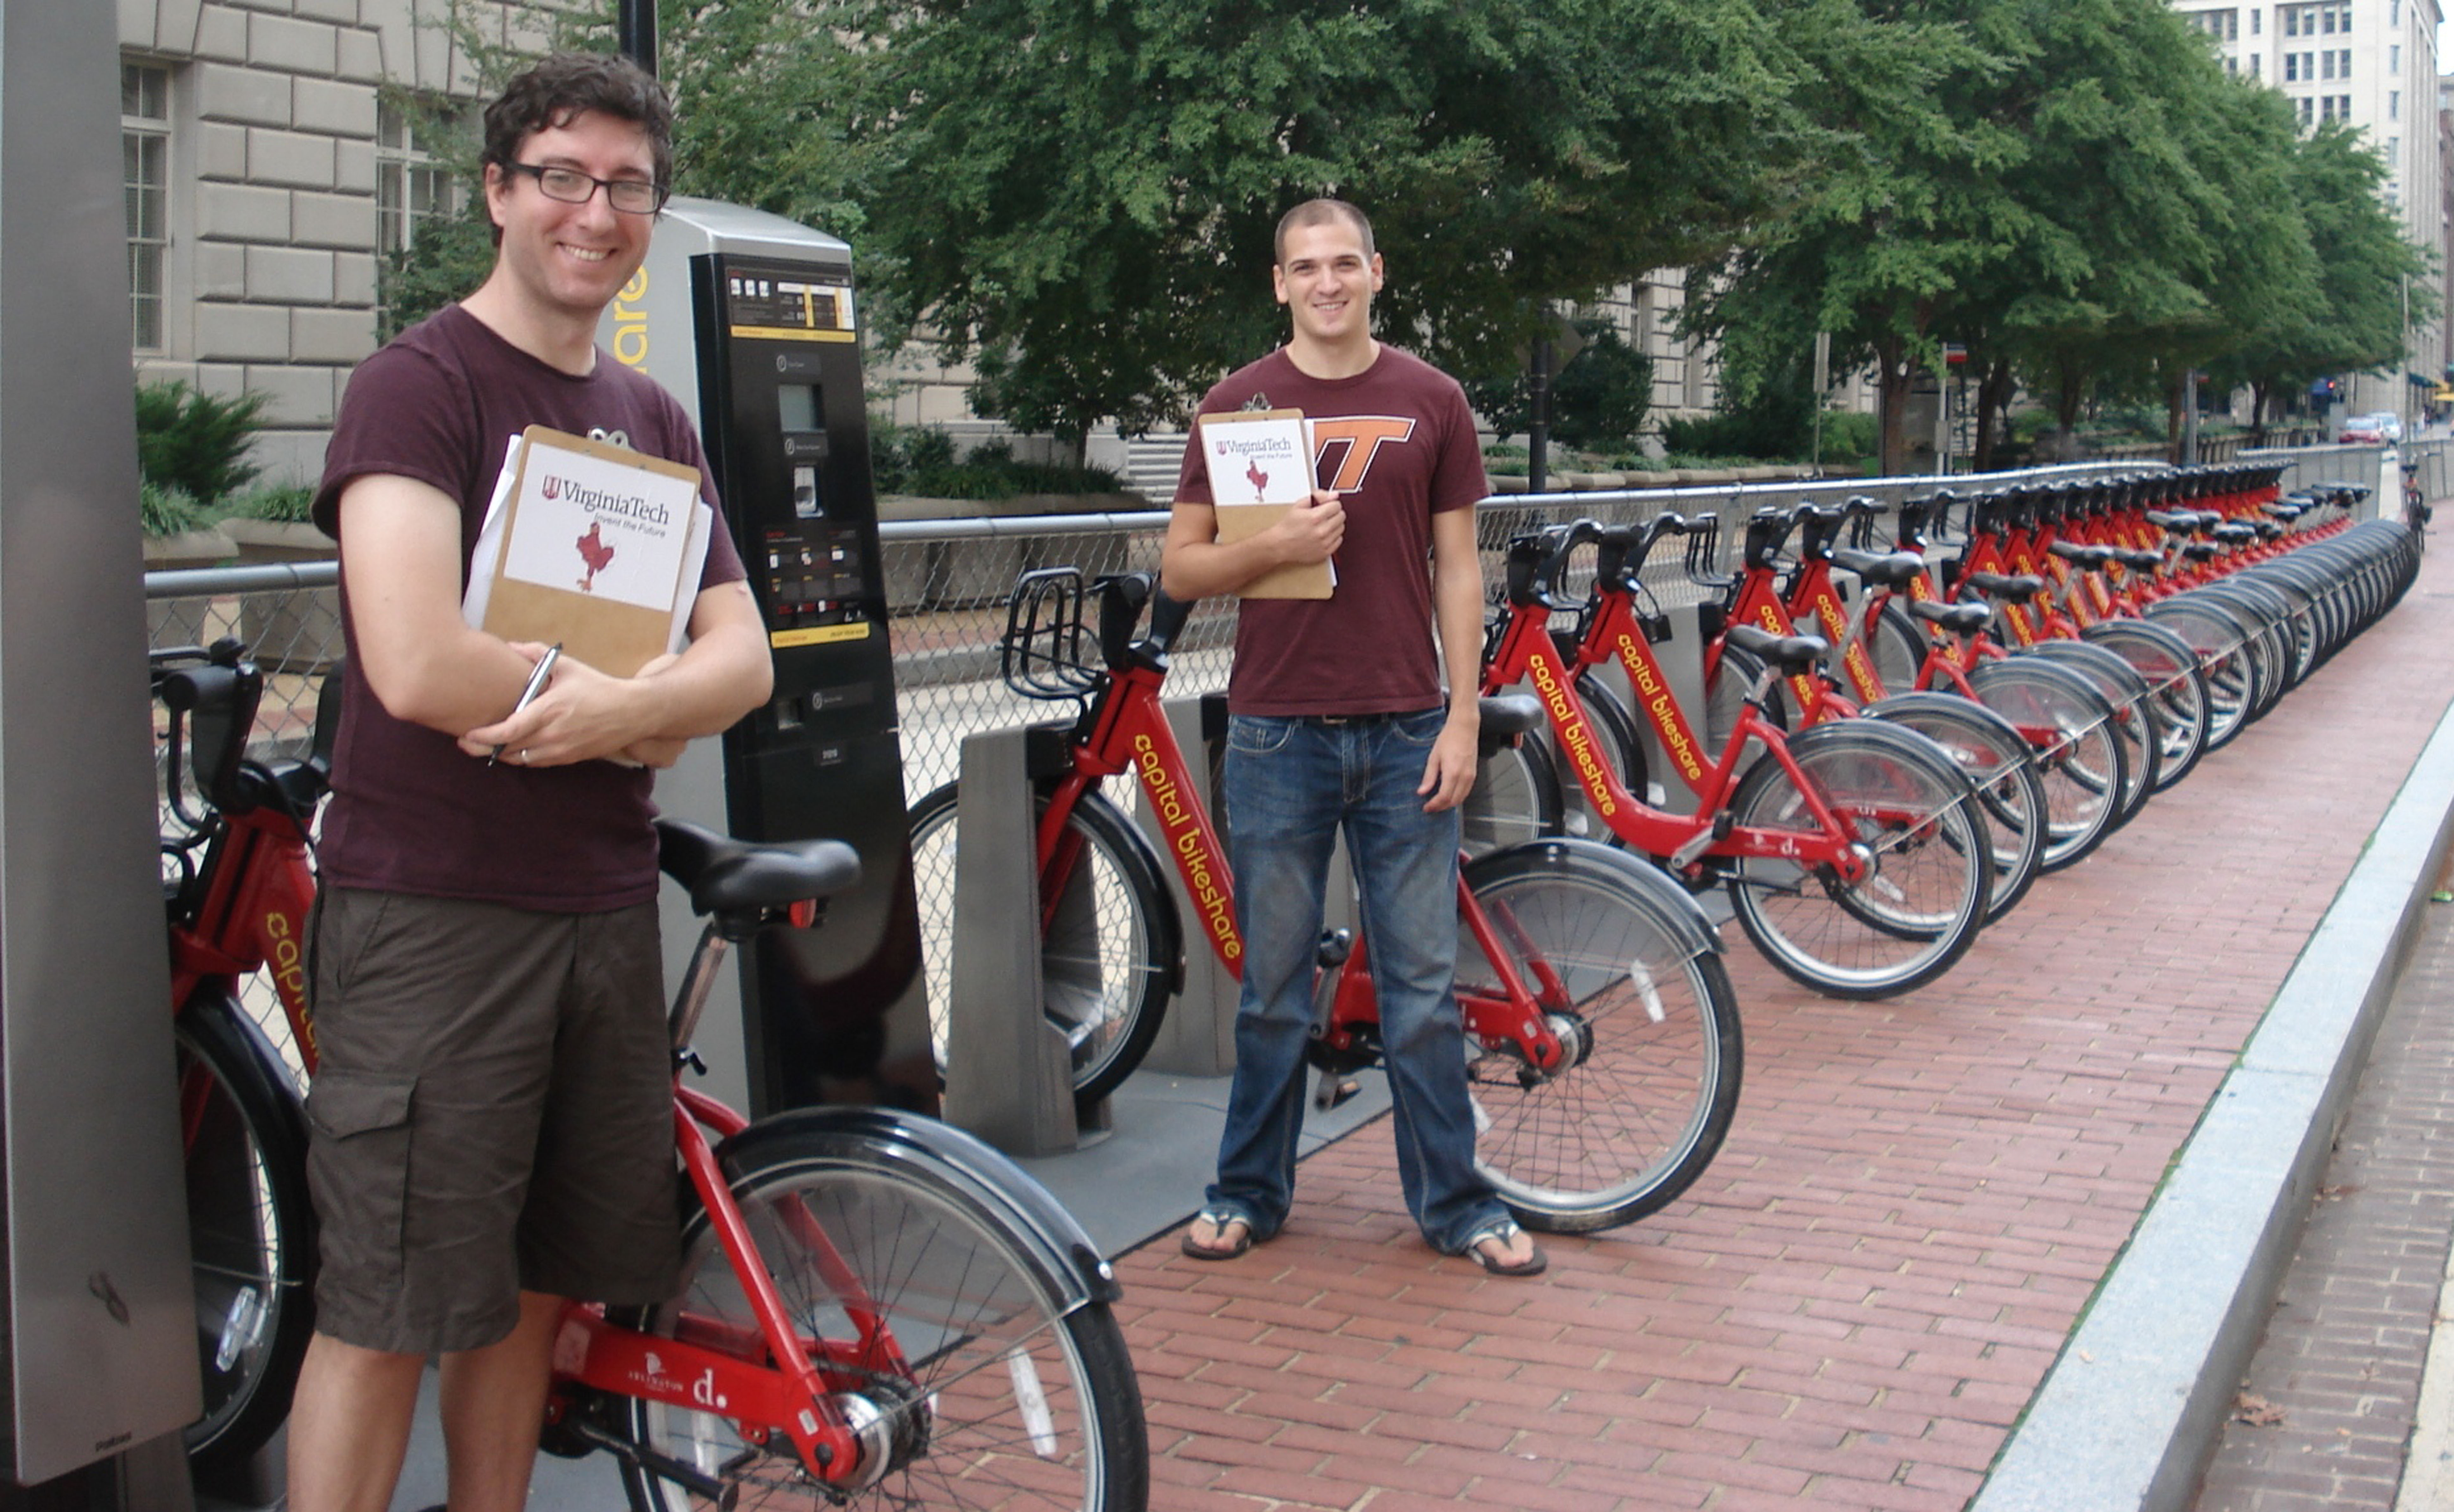 Tim Maher (left) and Austin Watkins (right) stand ready to take surveys at Capital Bikeshare station